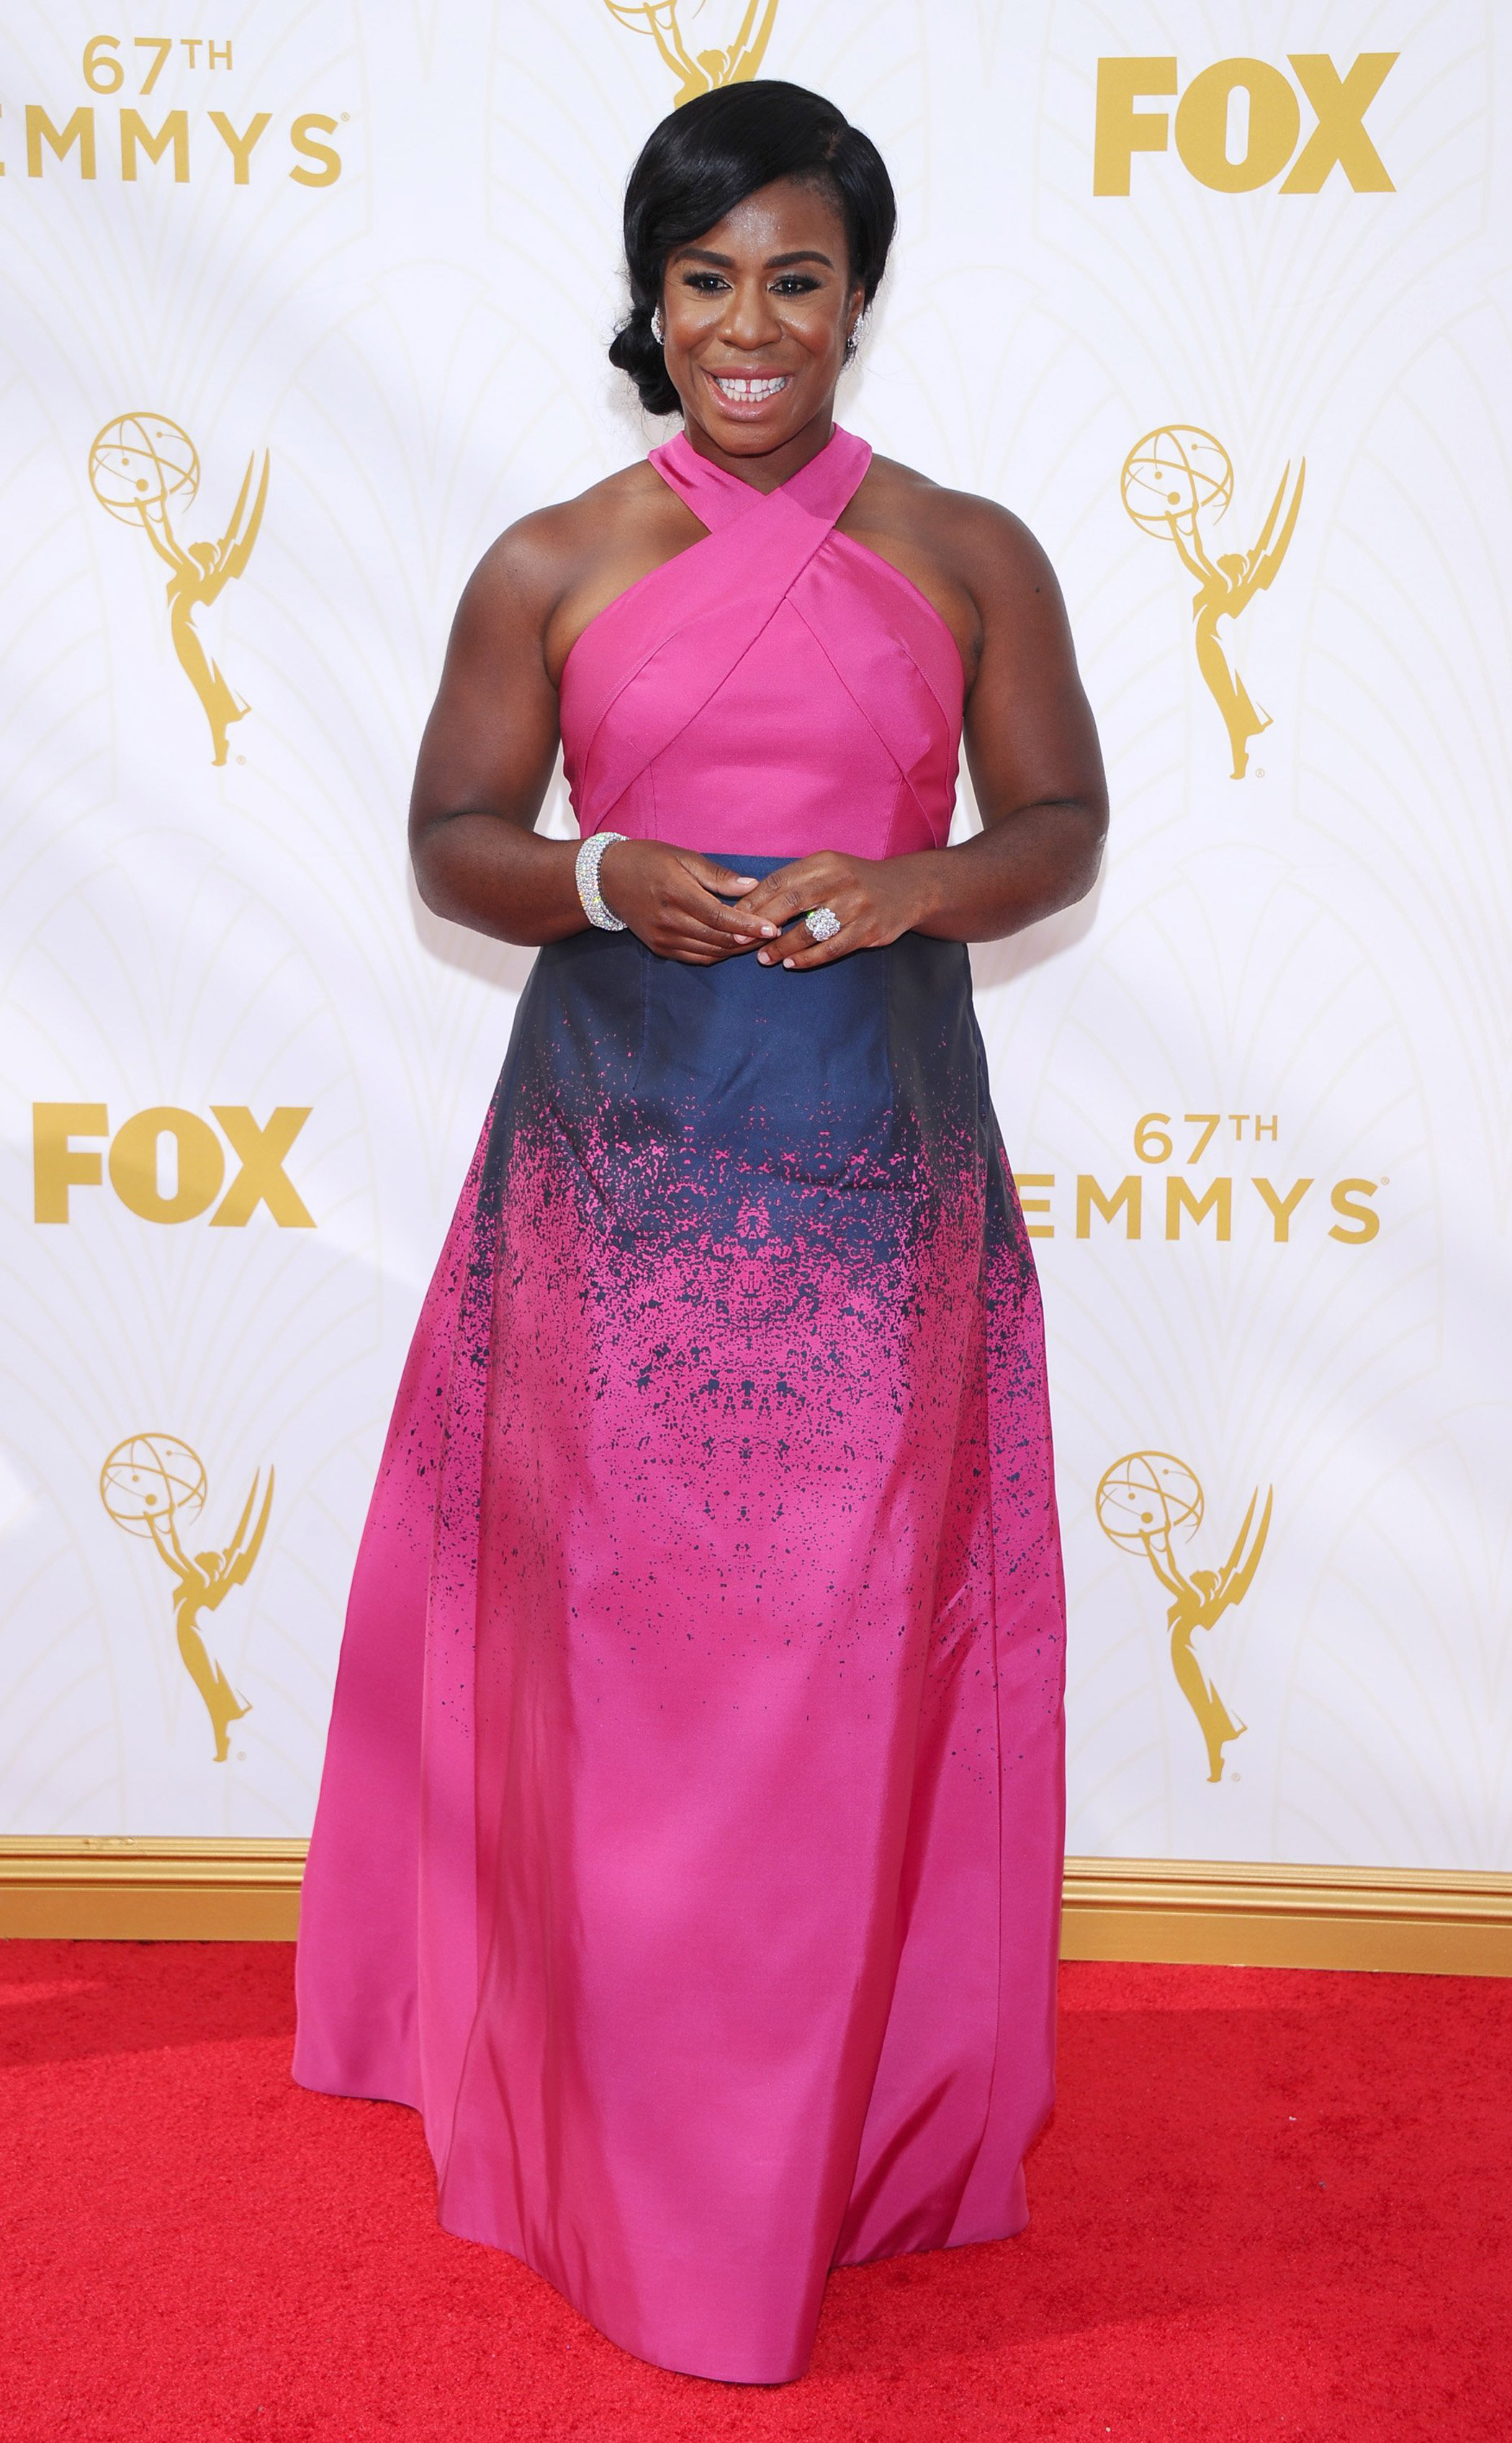 Uzo Aduba at the 67th Emmy Award on Sept. 20, 2015 in Los Angeles.